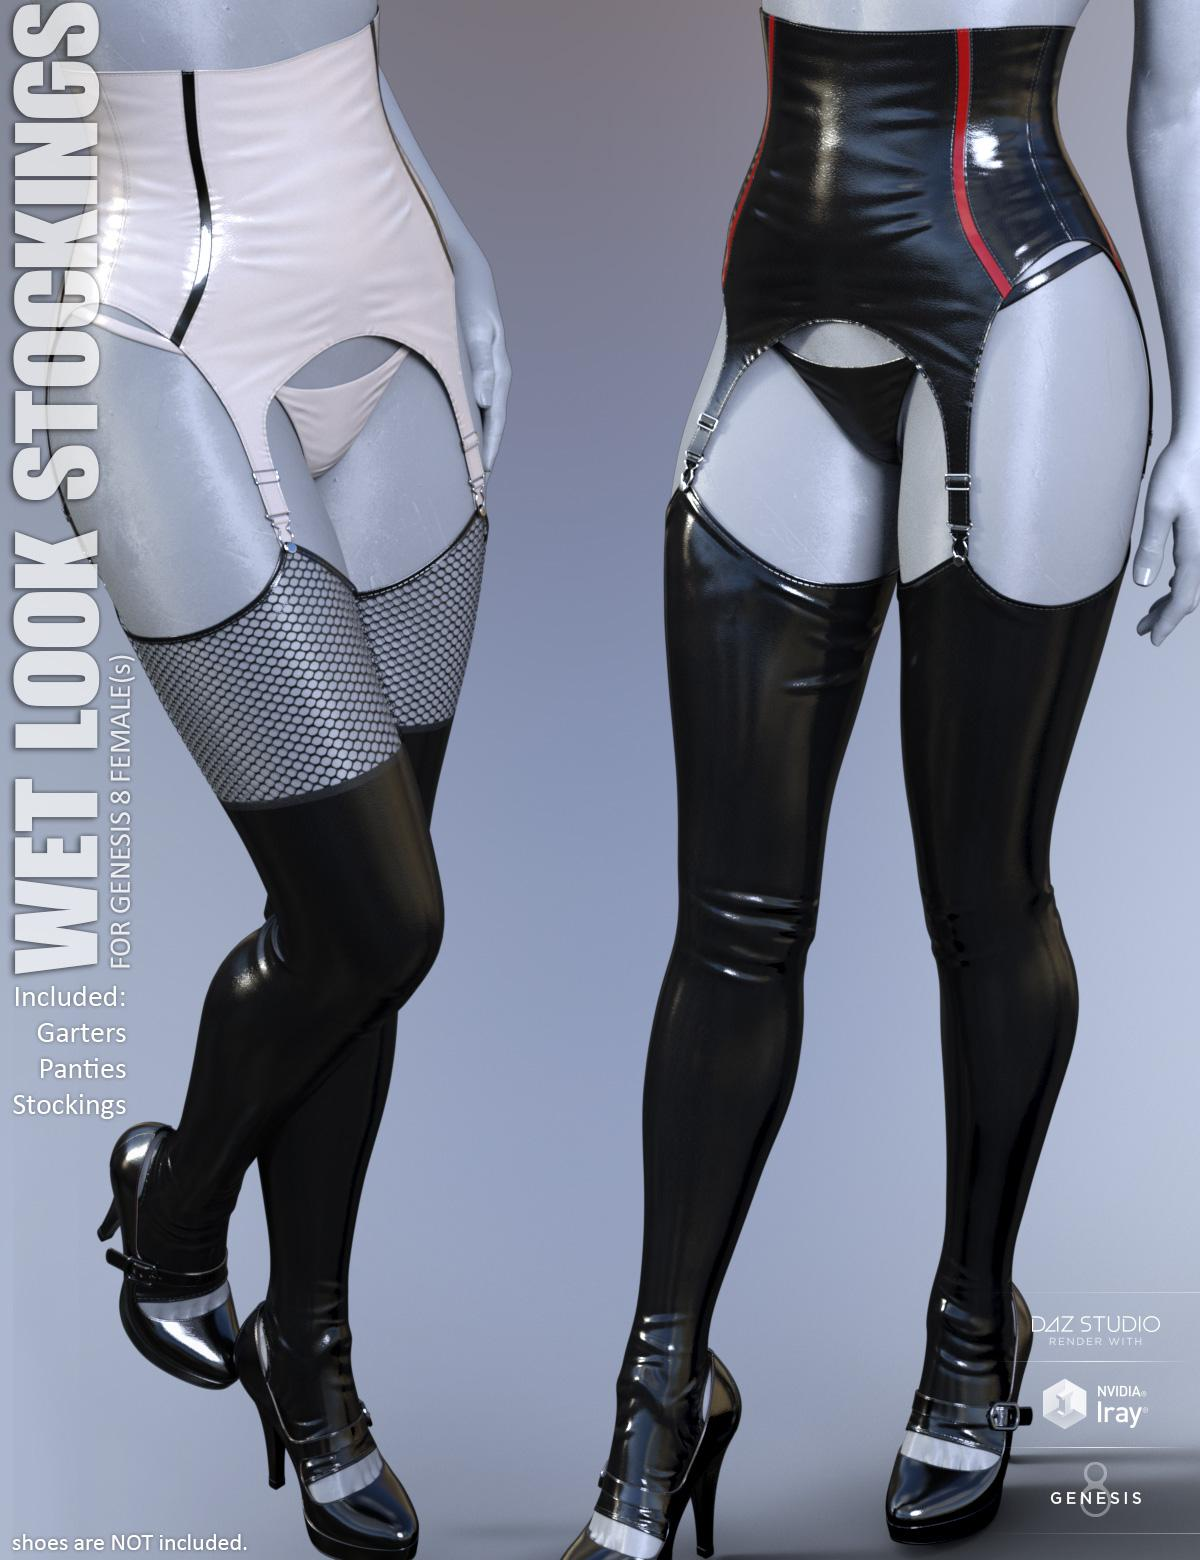 Wet Look Stockings for Genesis 8